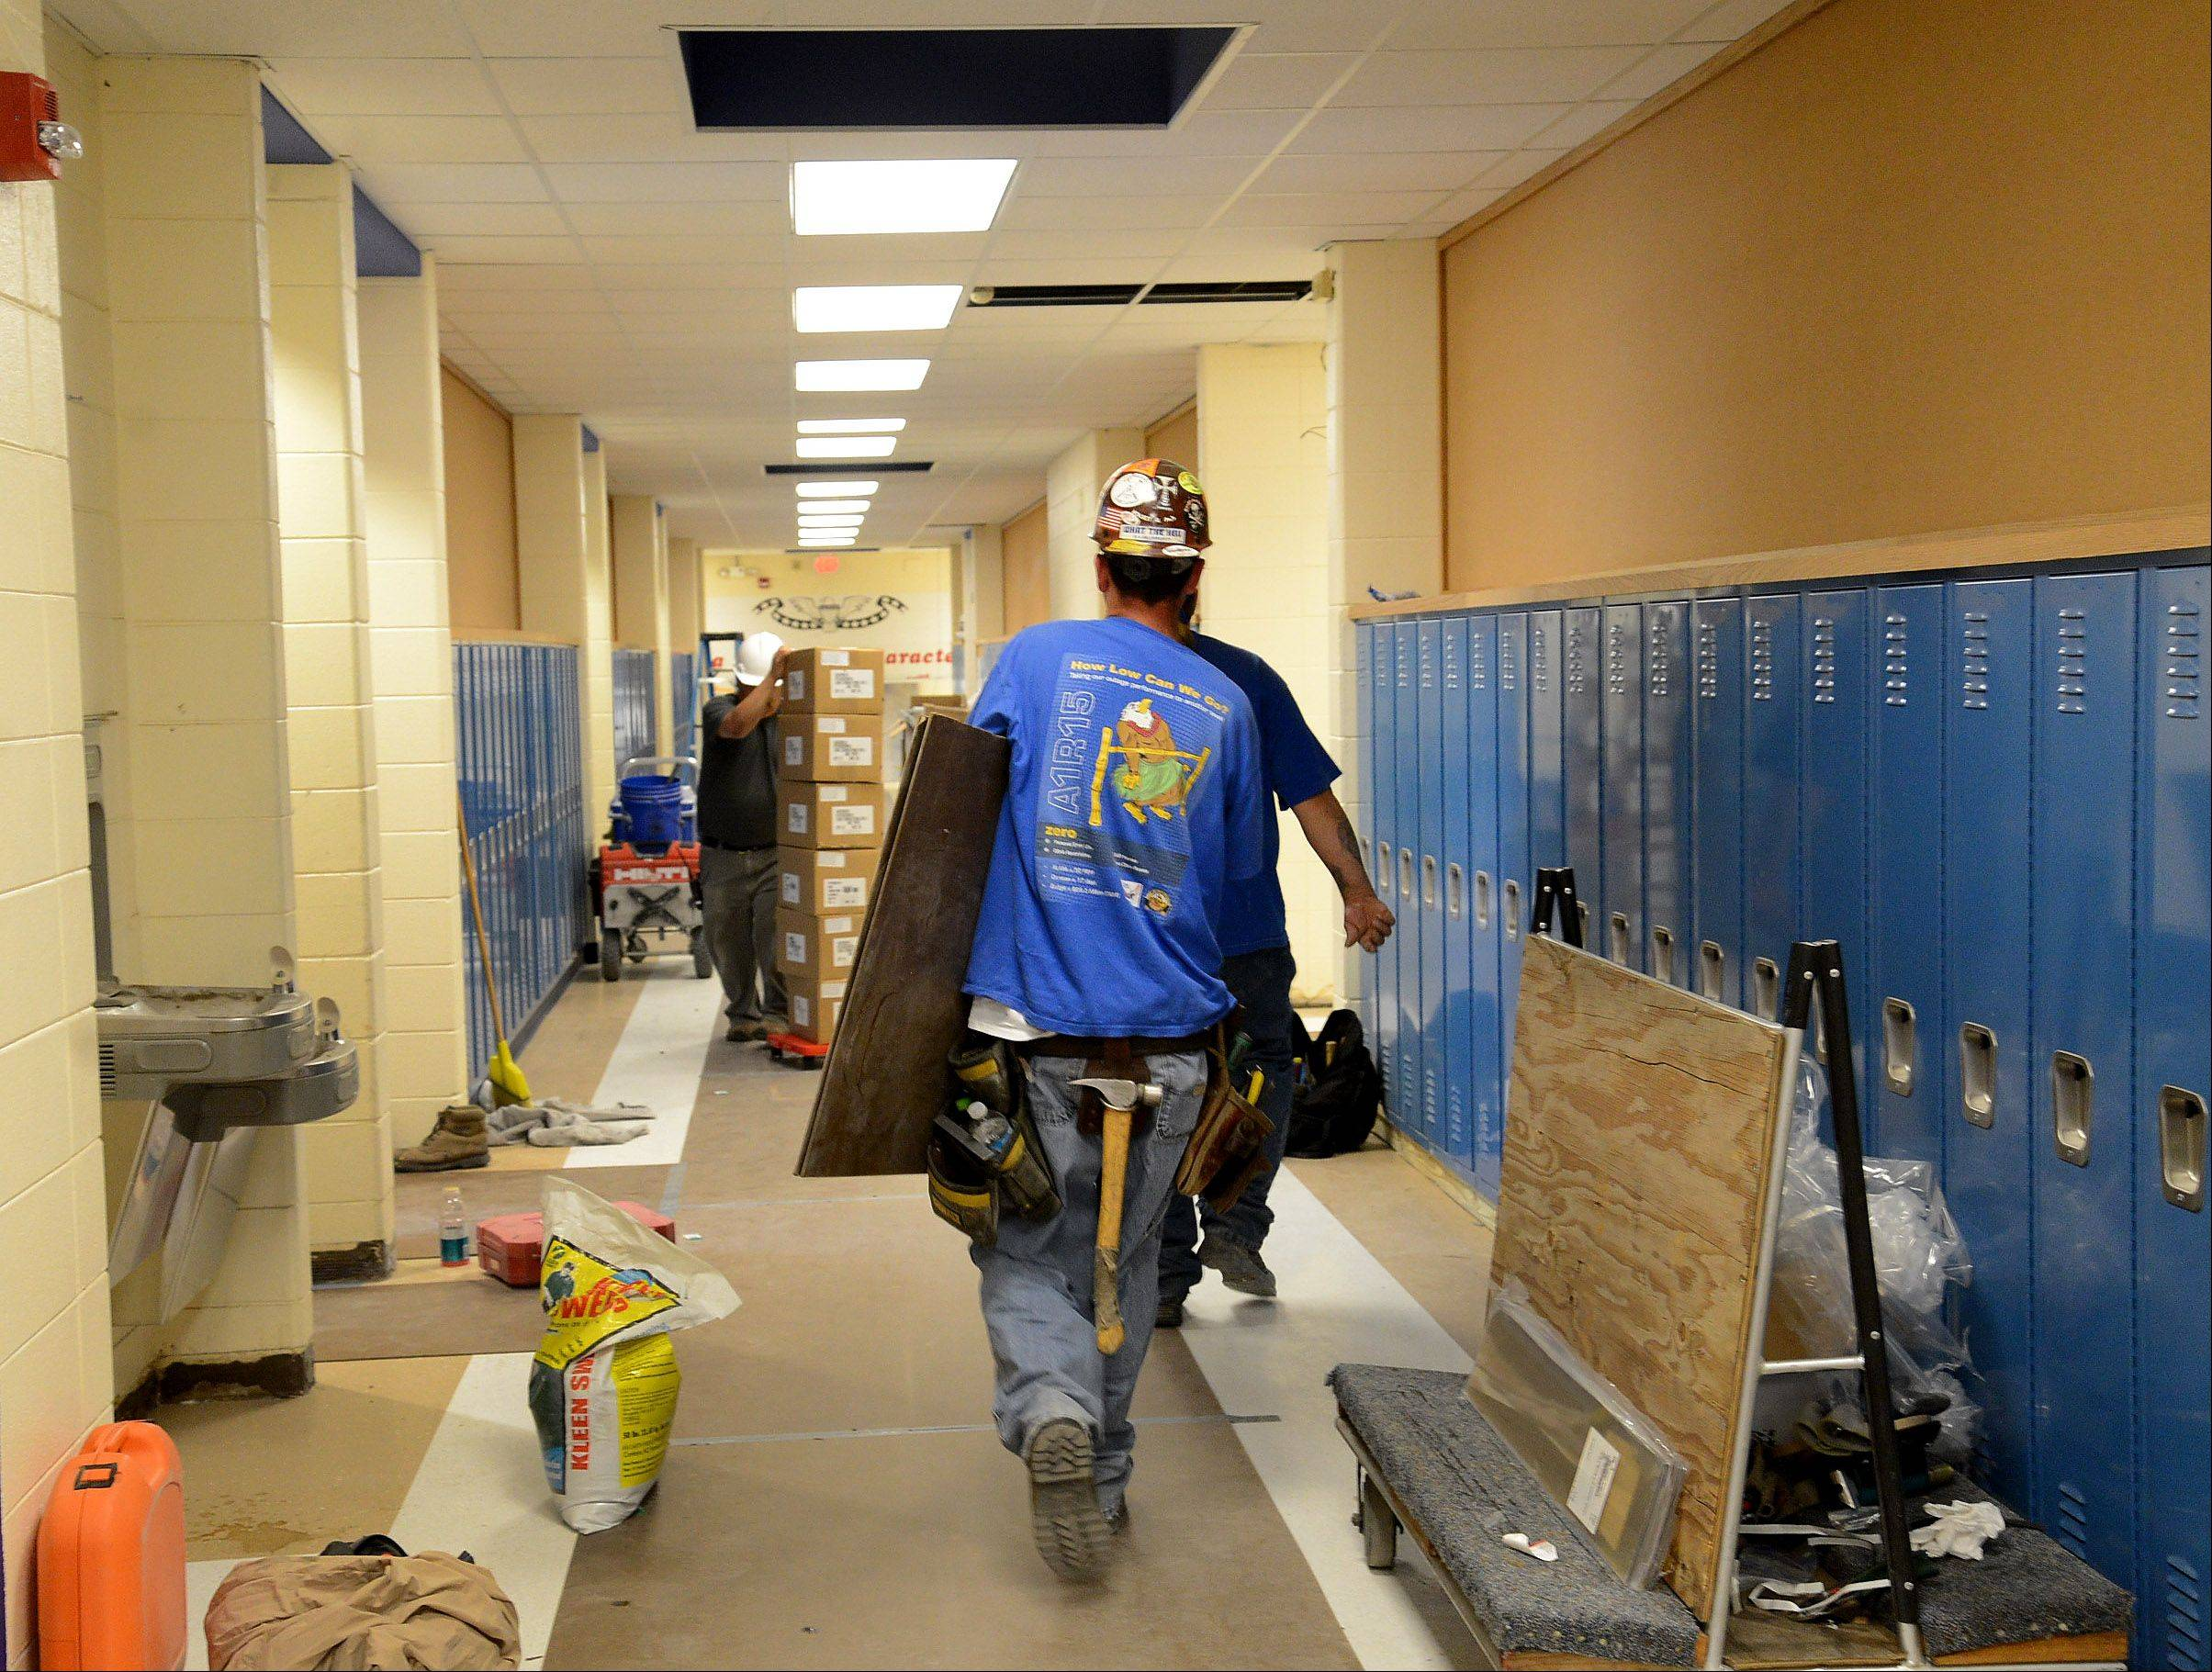 New lockers and flooring are part of a $3.2 million building renovation at Oak Grove School in Green Oaks.